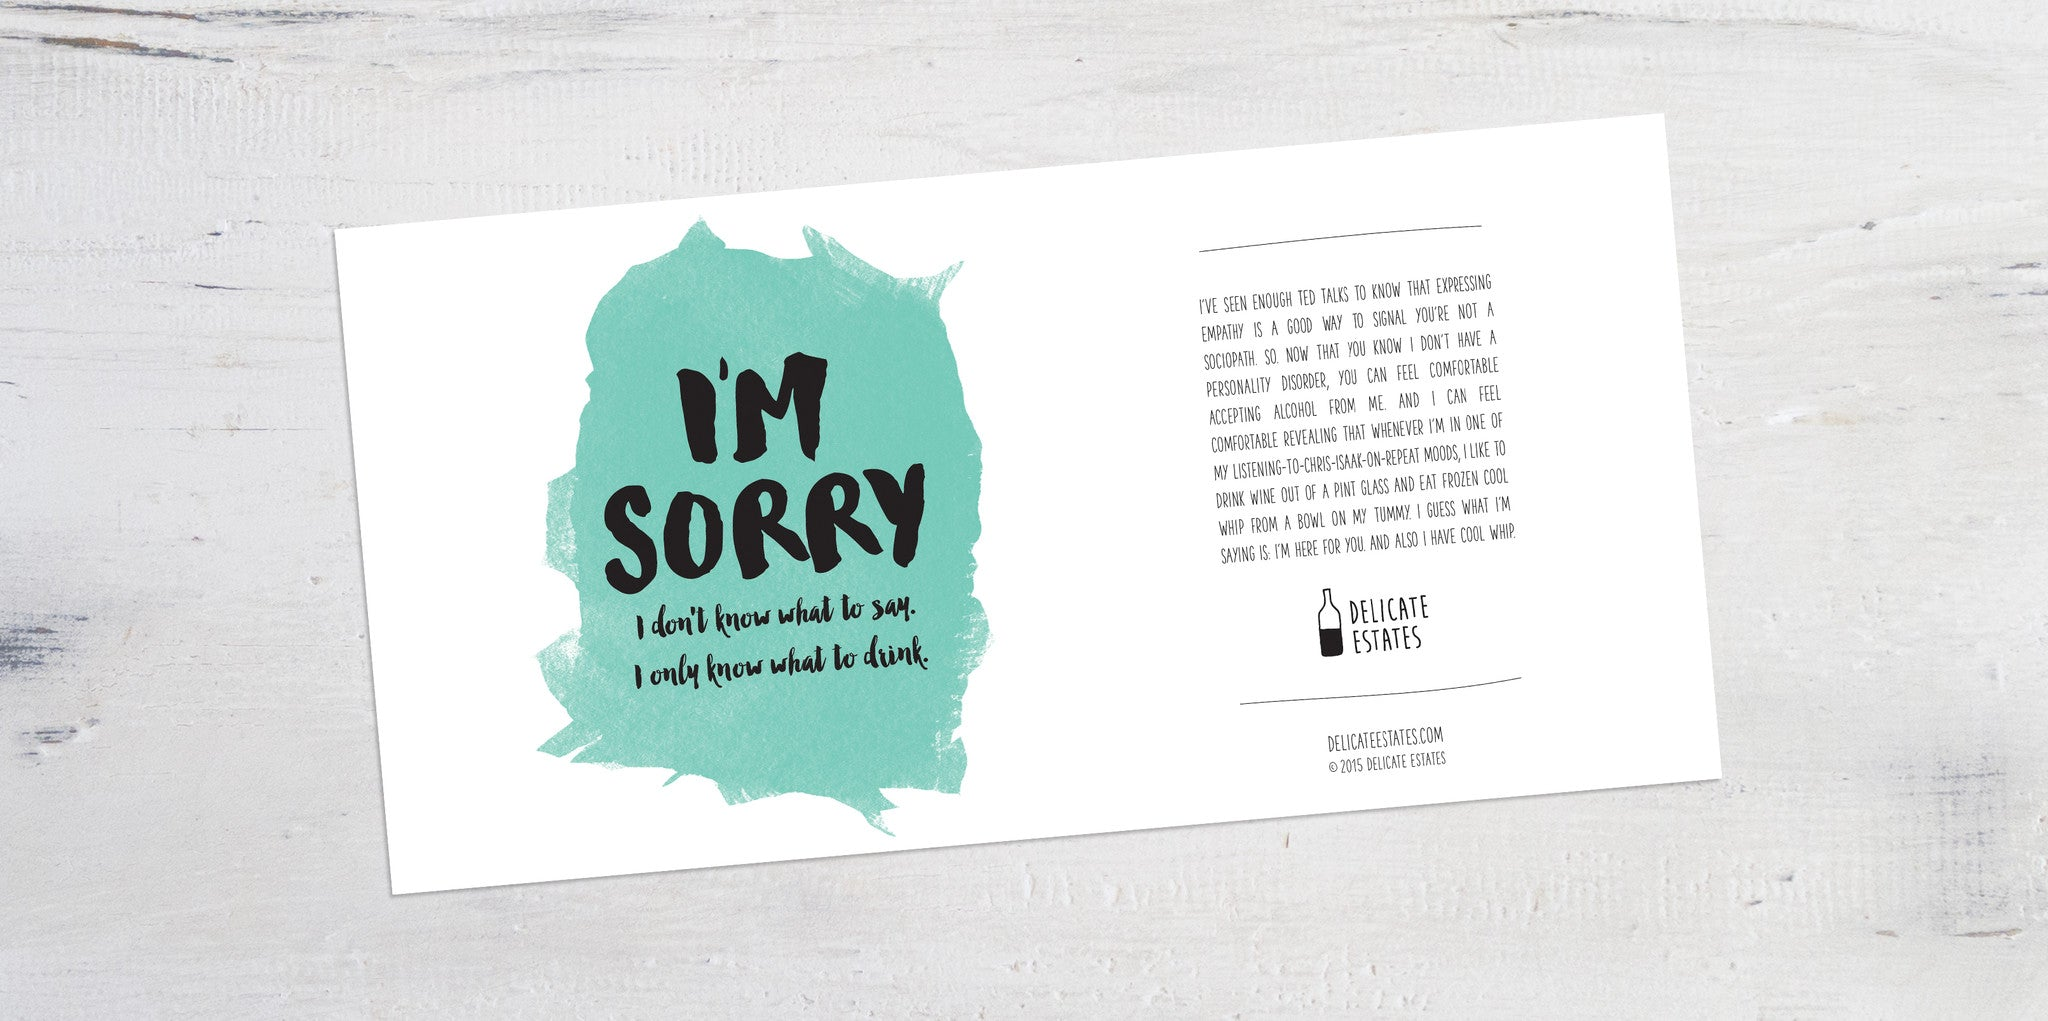 I'm sorry wine label greeting card delicate estates sympathy empathy feelings better cheer up apology lift spirits